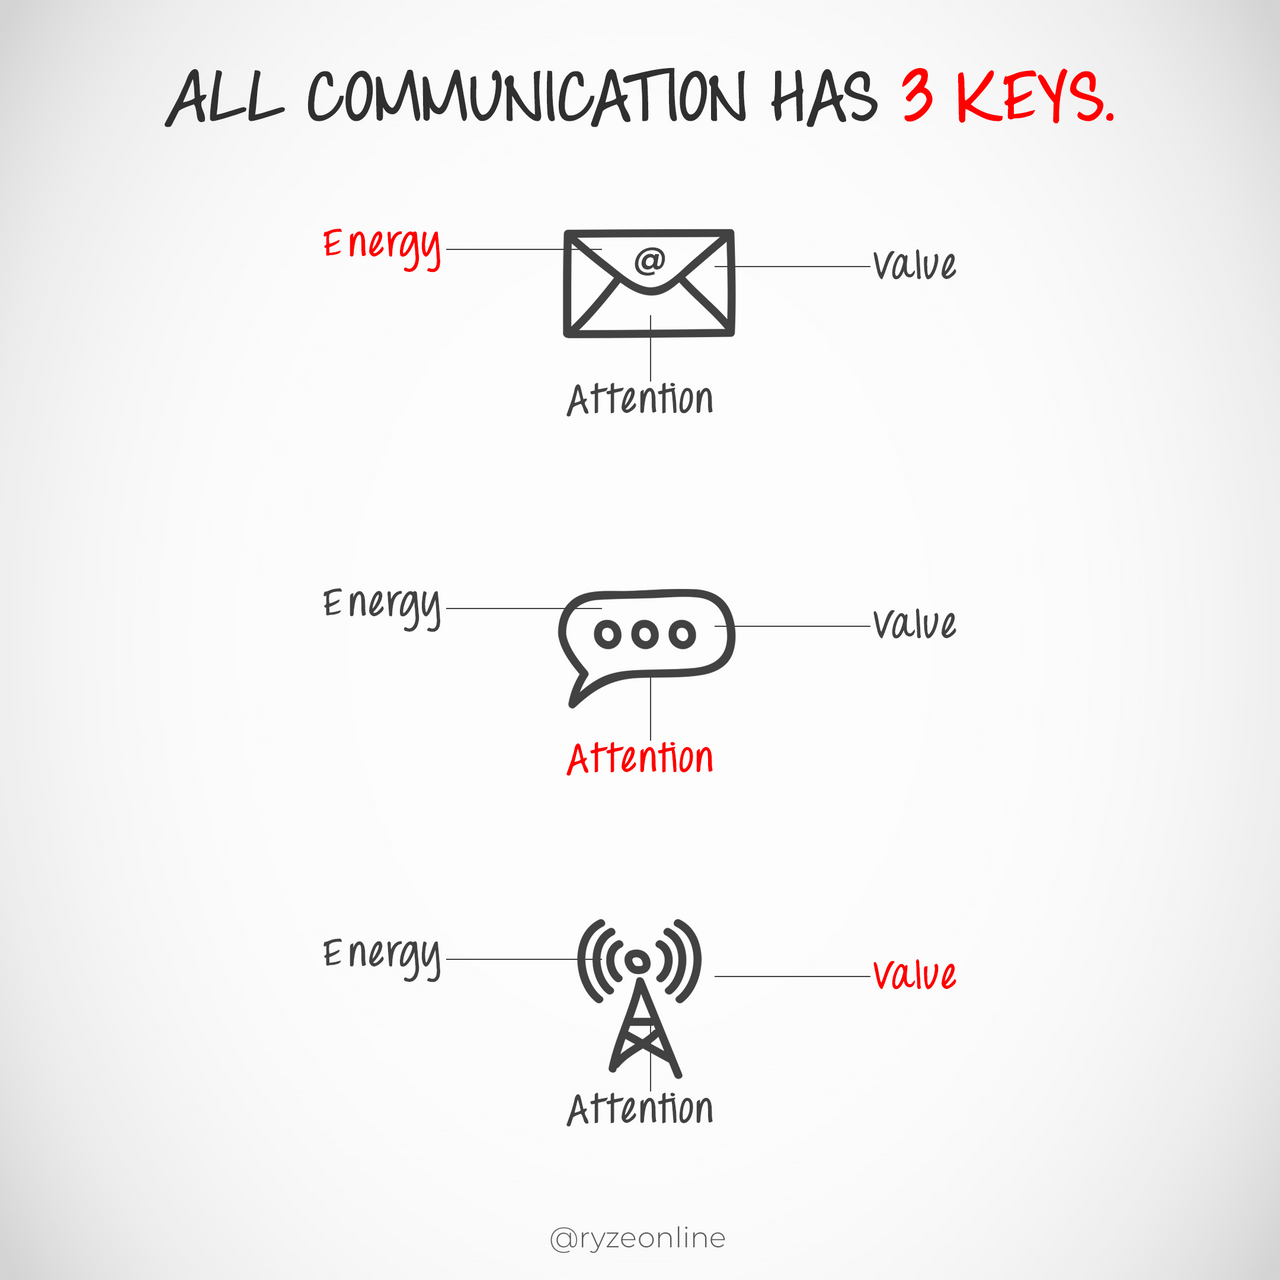 020_Energy_Value_Attention.png